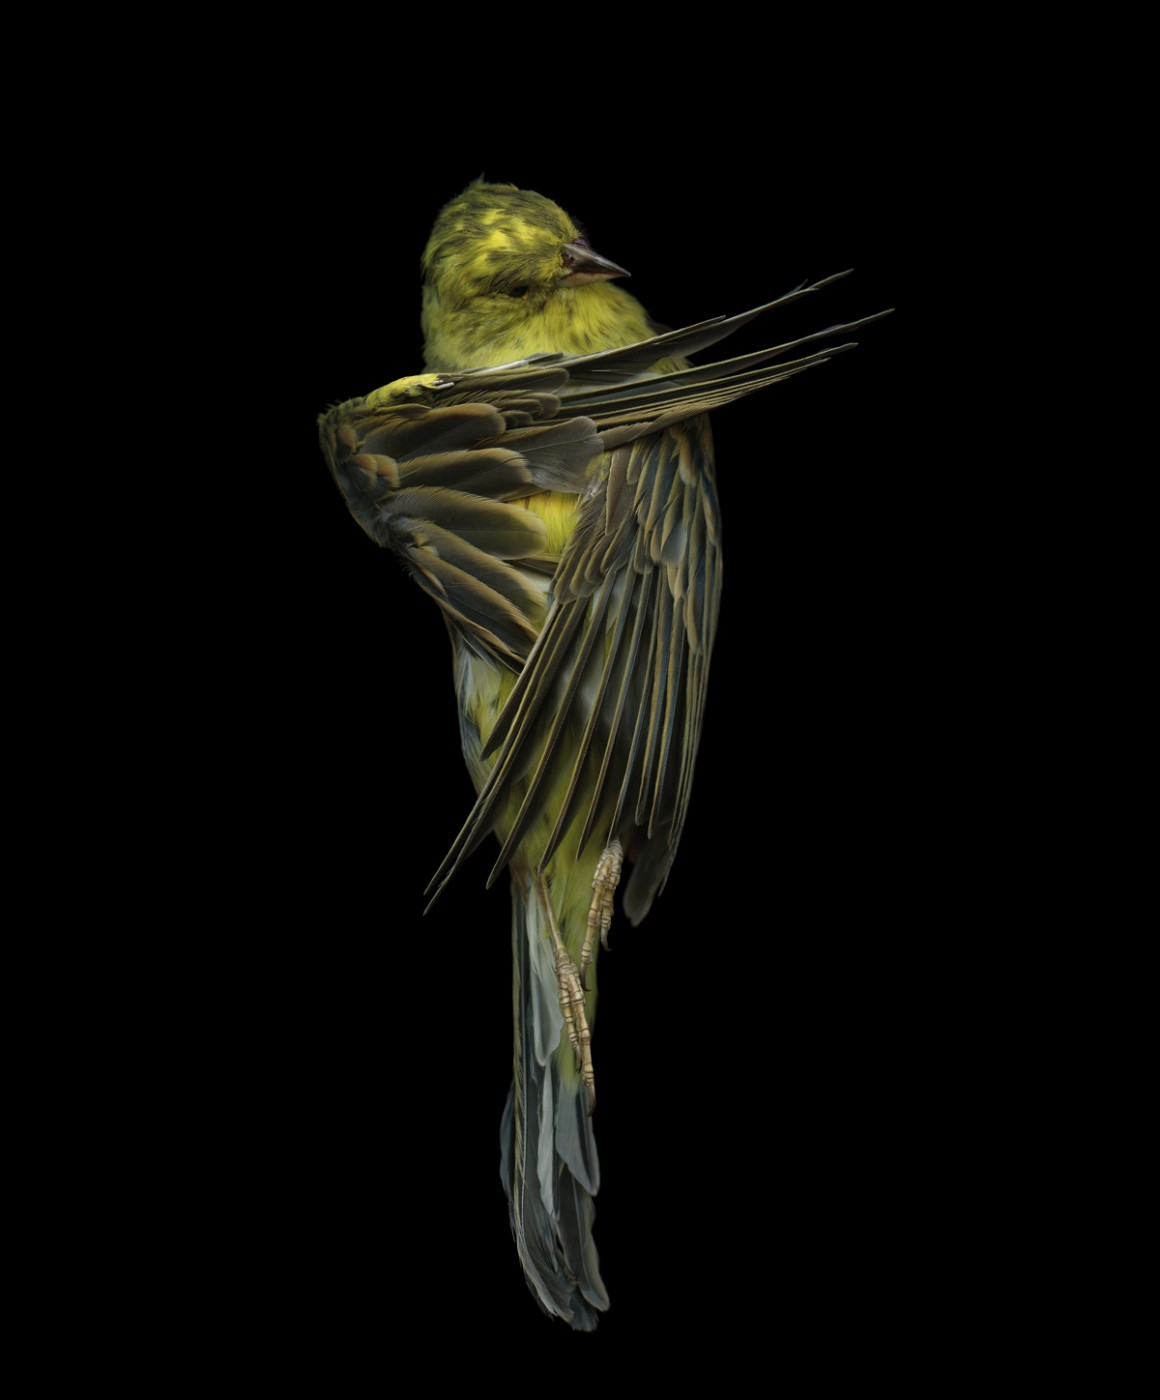 Edgar Leciejewski, </span><span><em>Yellowhammer #07</em>, </span><span>2009. From the series &quot;Aves,&quot; 2003-09